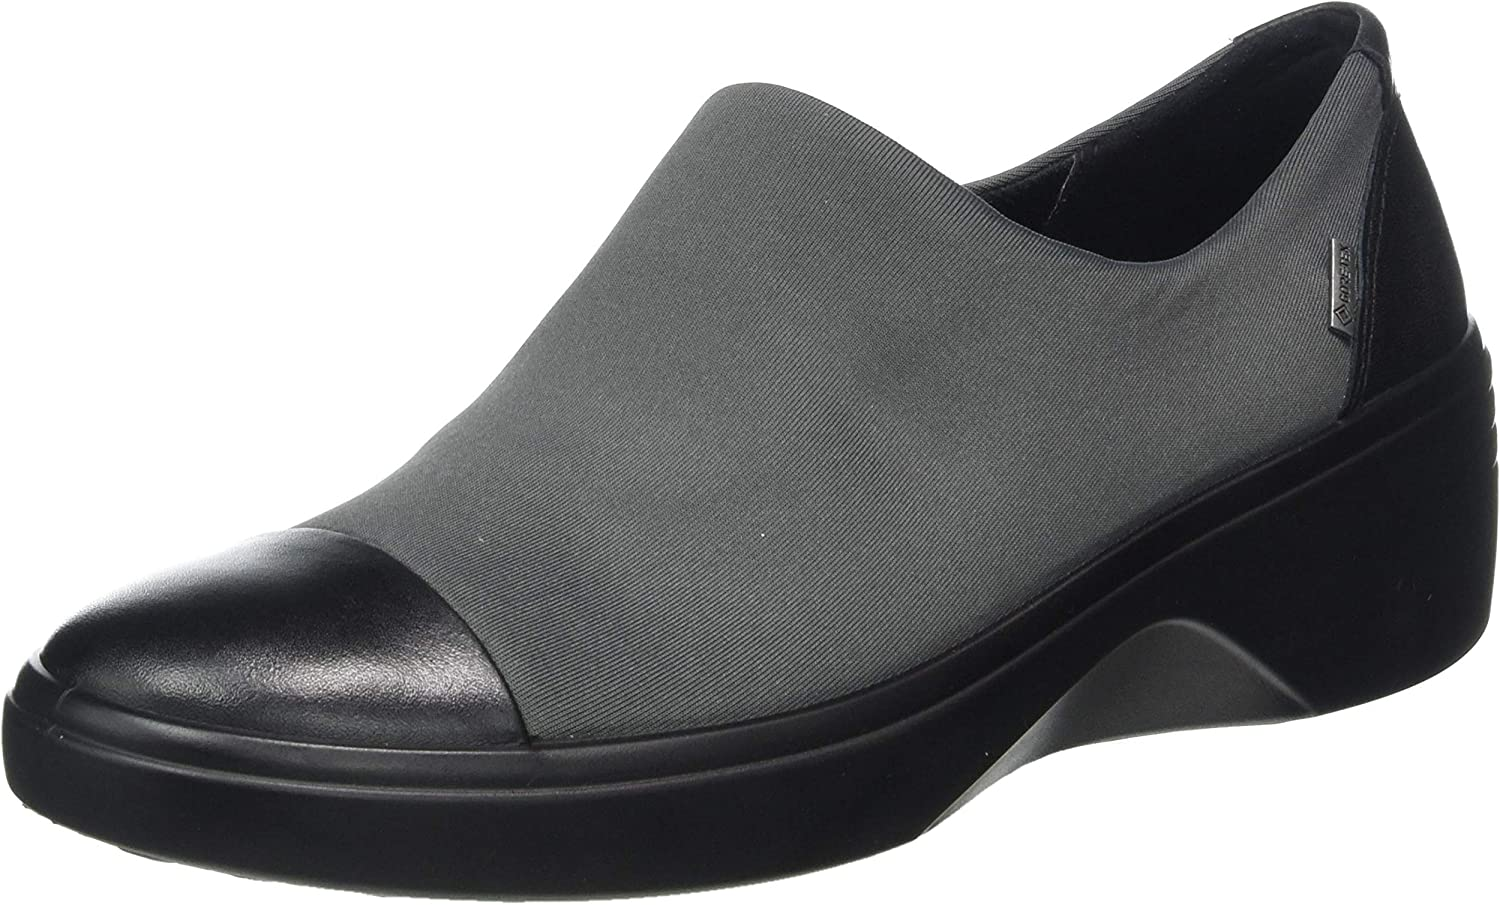 ECCO Womens Soft 7 Wedge Blackmagnet Loafers